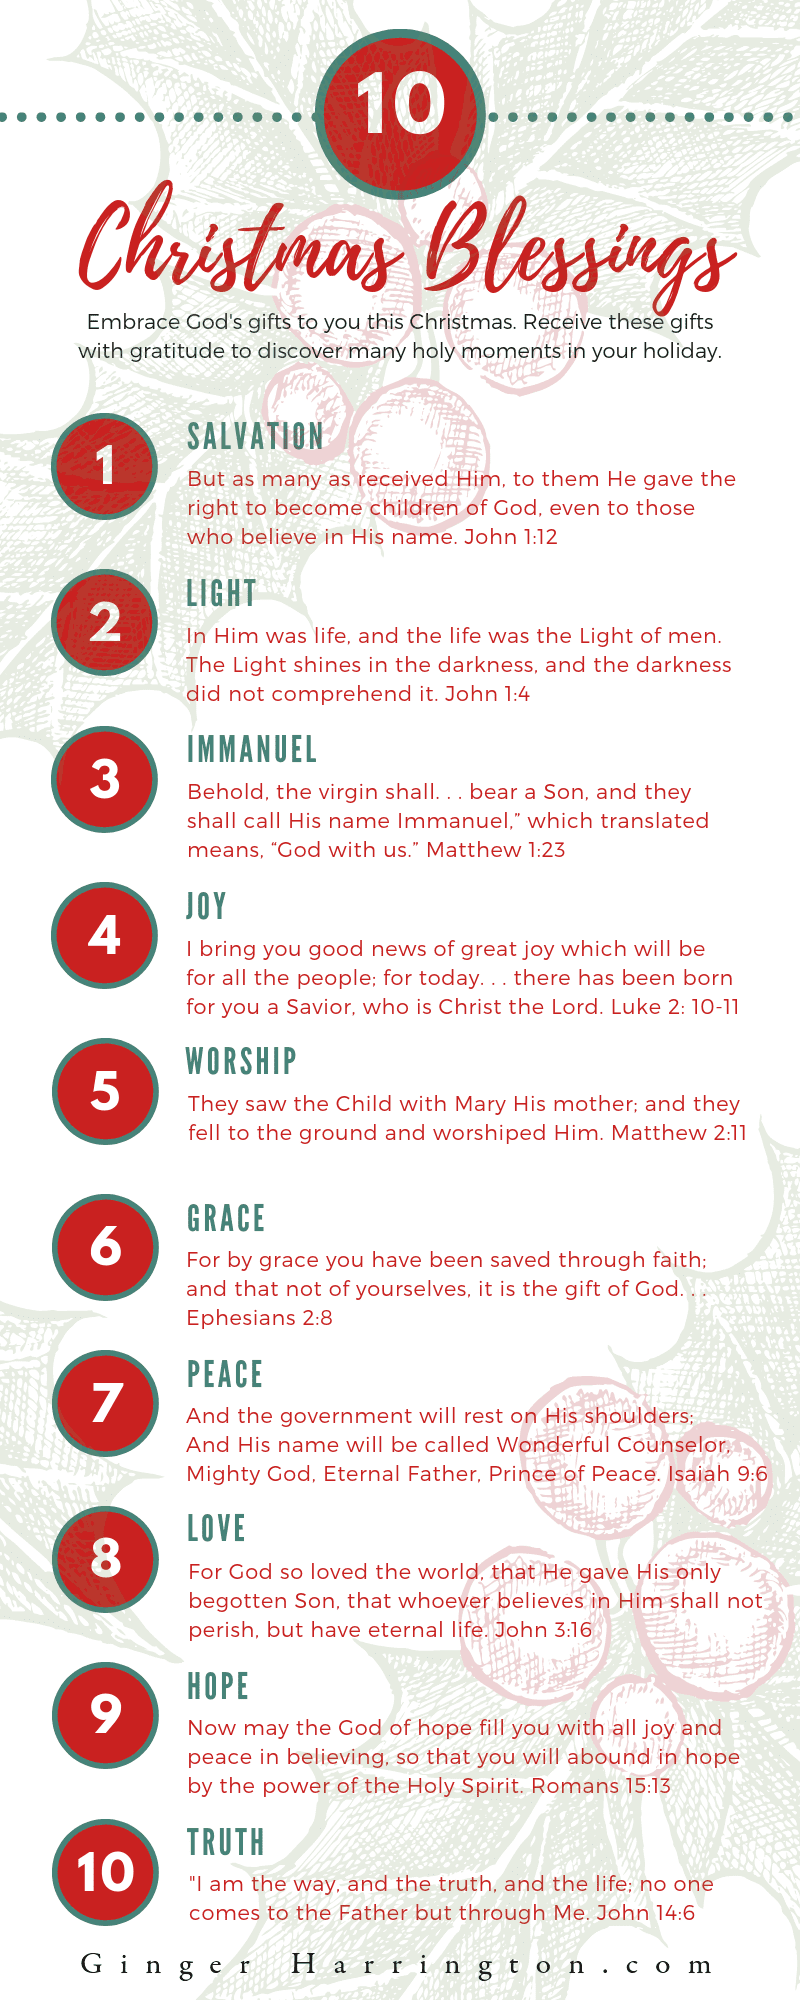 This infographic shares 10 Christmas Blessings, God's holy gifts to us. Enjoy these verses to reflect on the best gifts of Christmas: Salvation, Light, Immanuel, Joy, Worship, Grace, Peace, Love, Hope, and Truth.